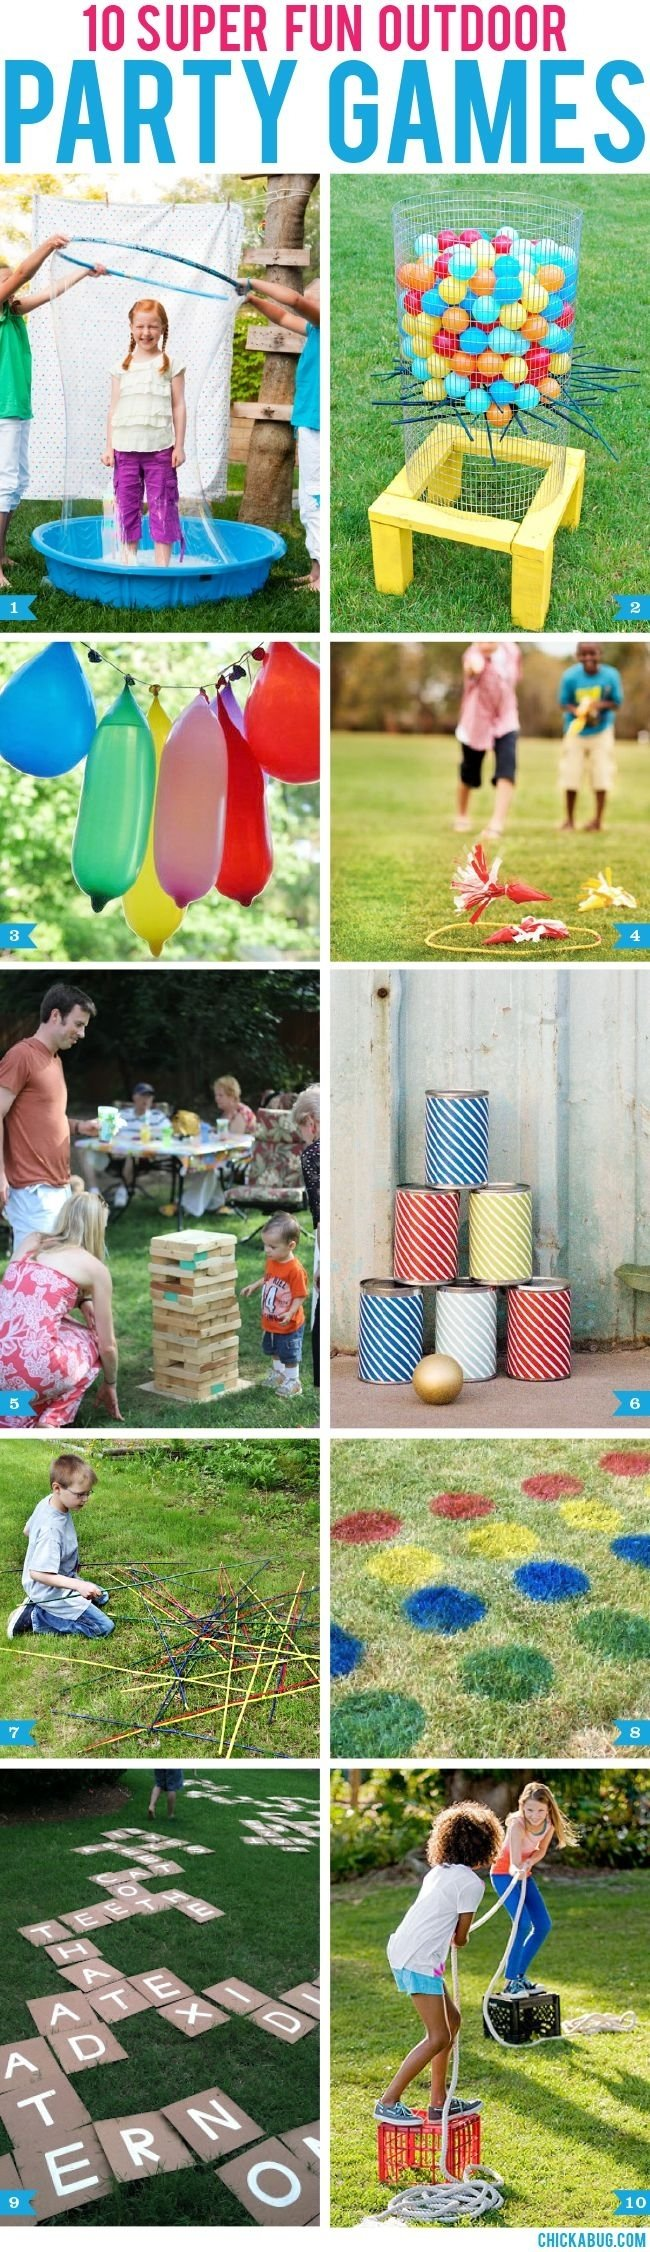 10 Lovely Party Game Ideas For Teenagers 10 super fun outdoor party games party games outdoor party games 2020